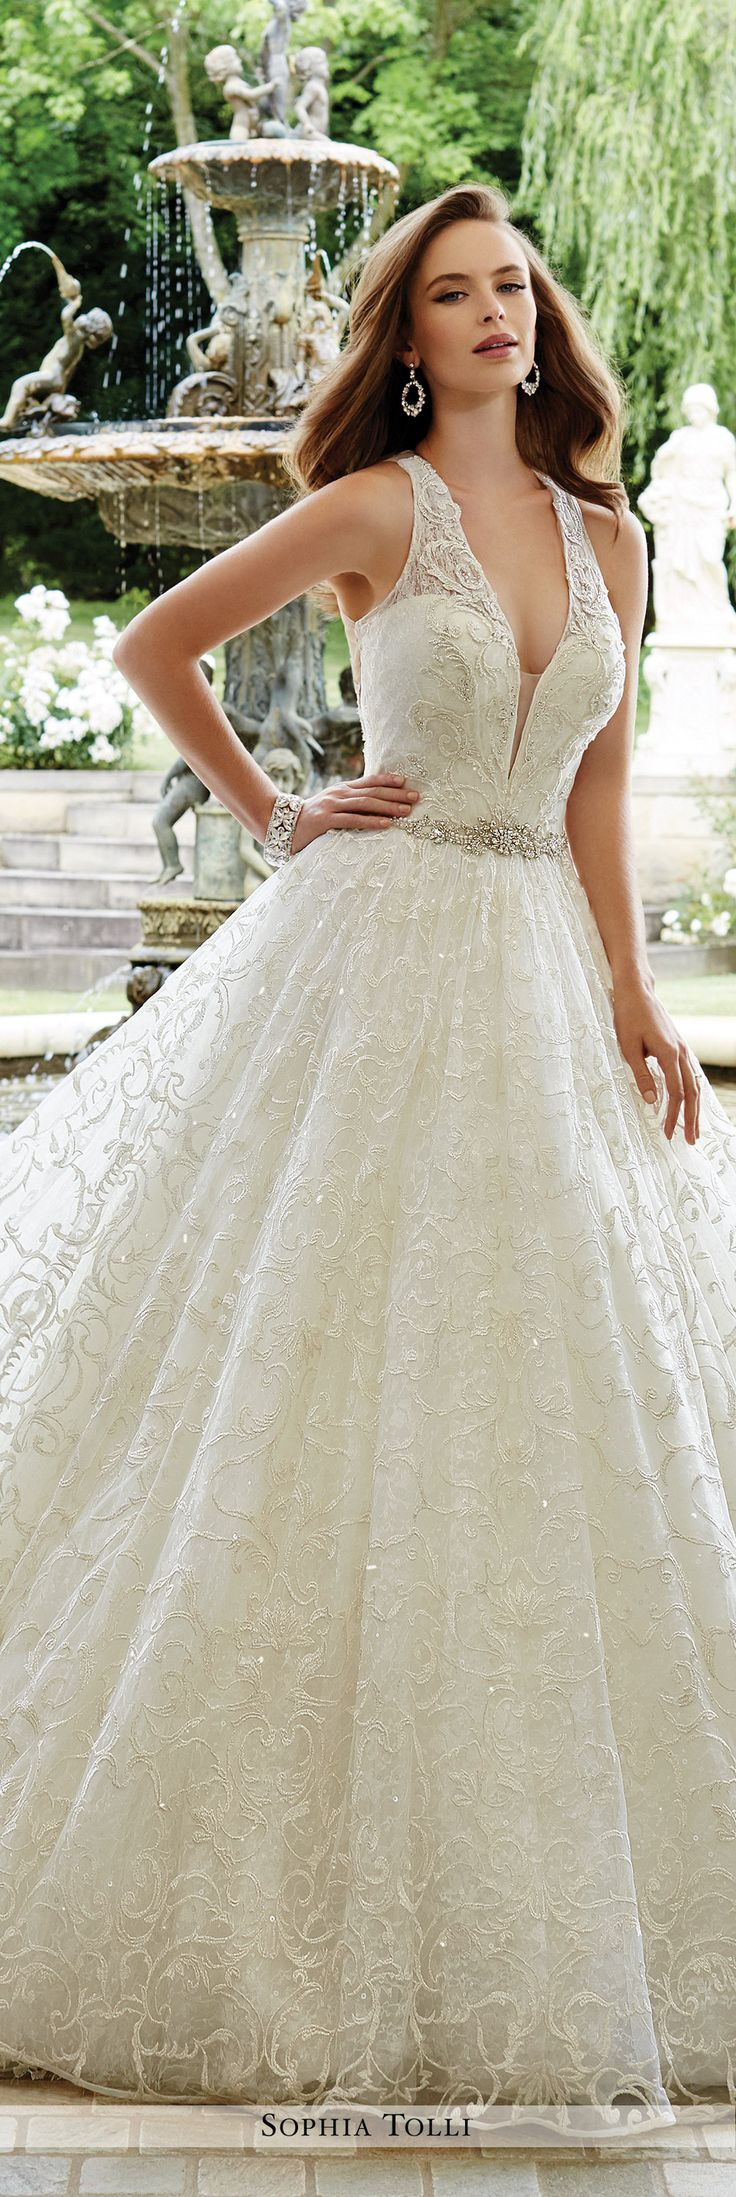 Sophia Tolli Fall 2016 Wedding Gown Collection - Style No. Y21675 Firenze - sleeveless lace and sequin ball gown wedding dress with illusion and lace back